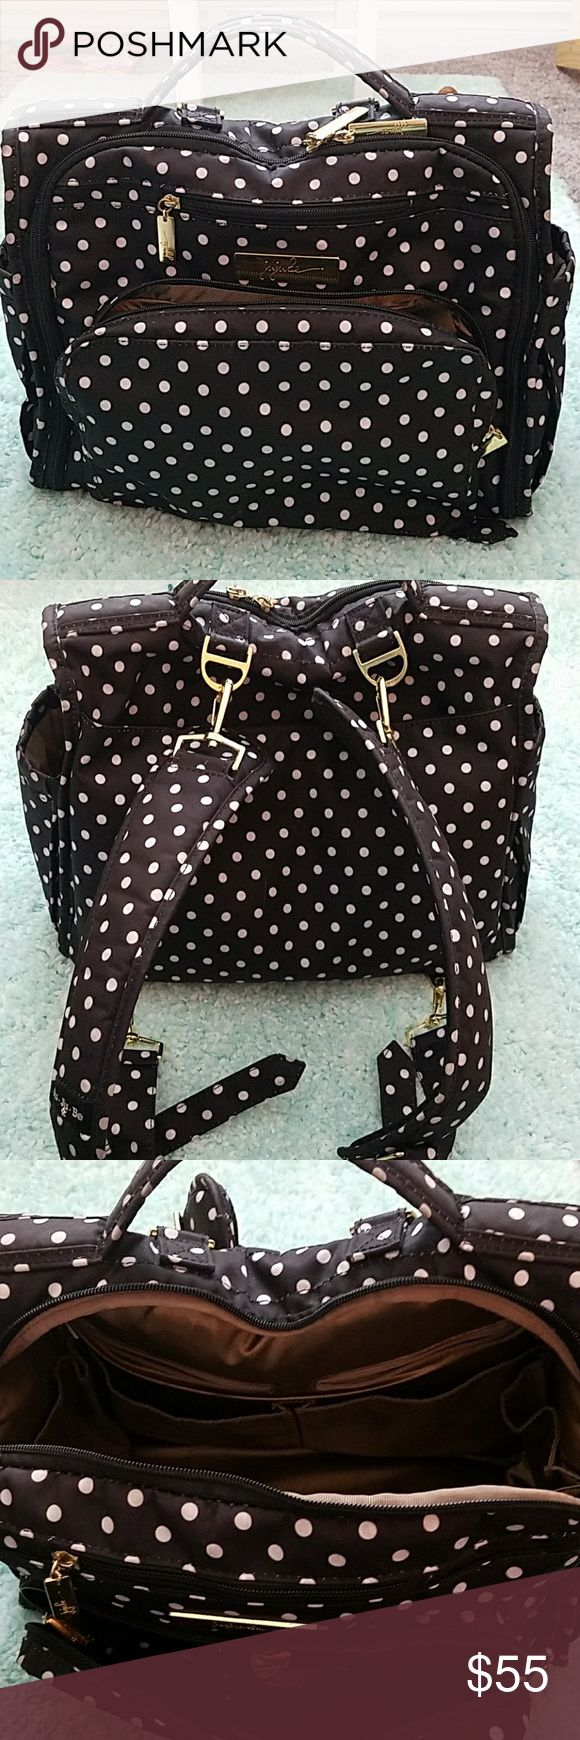 Jujube diaper backpack Black and white polka dot diaper bag jujube Bags Baby Bags